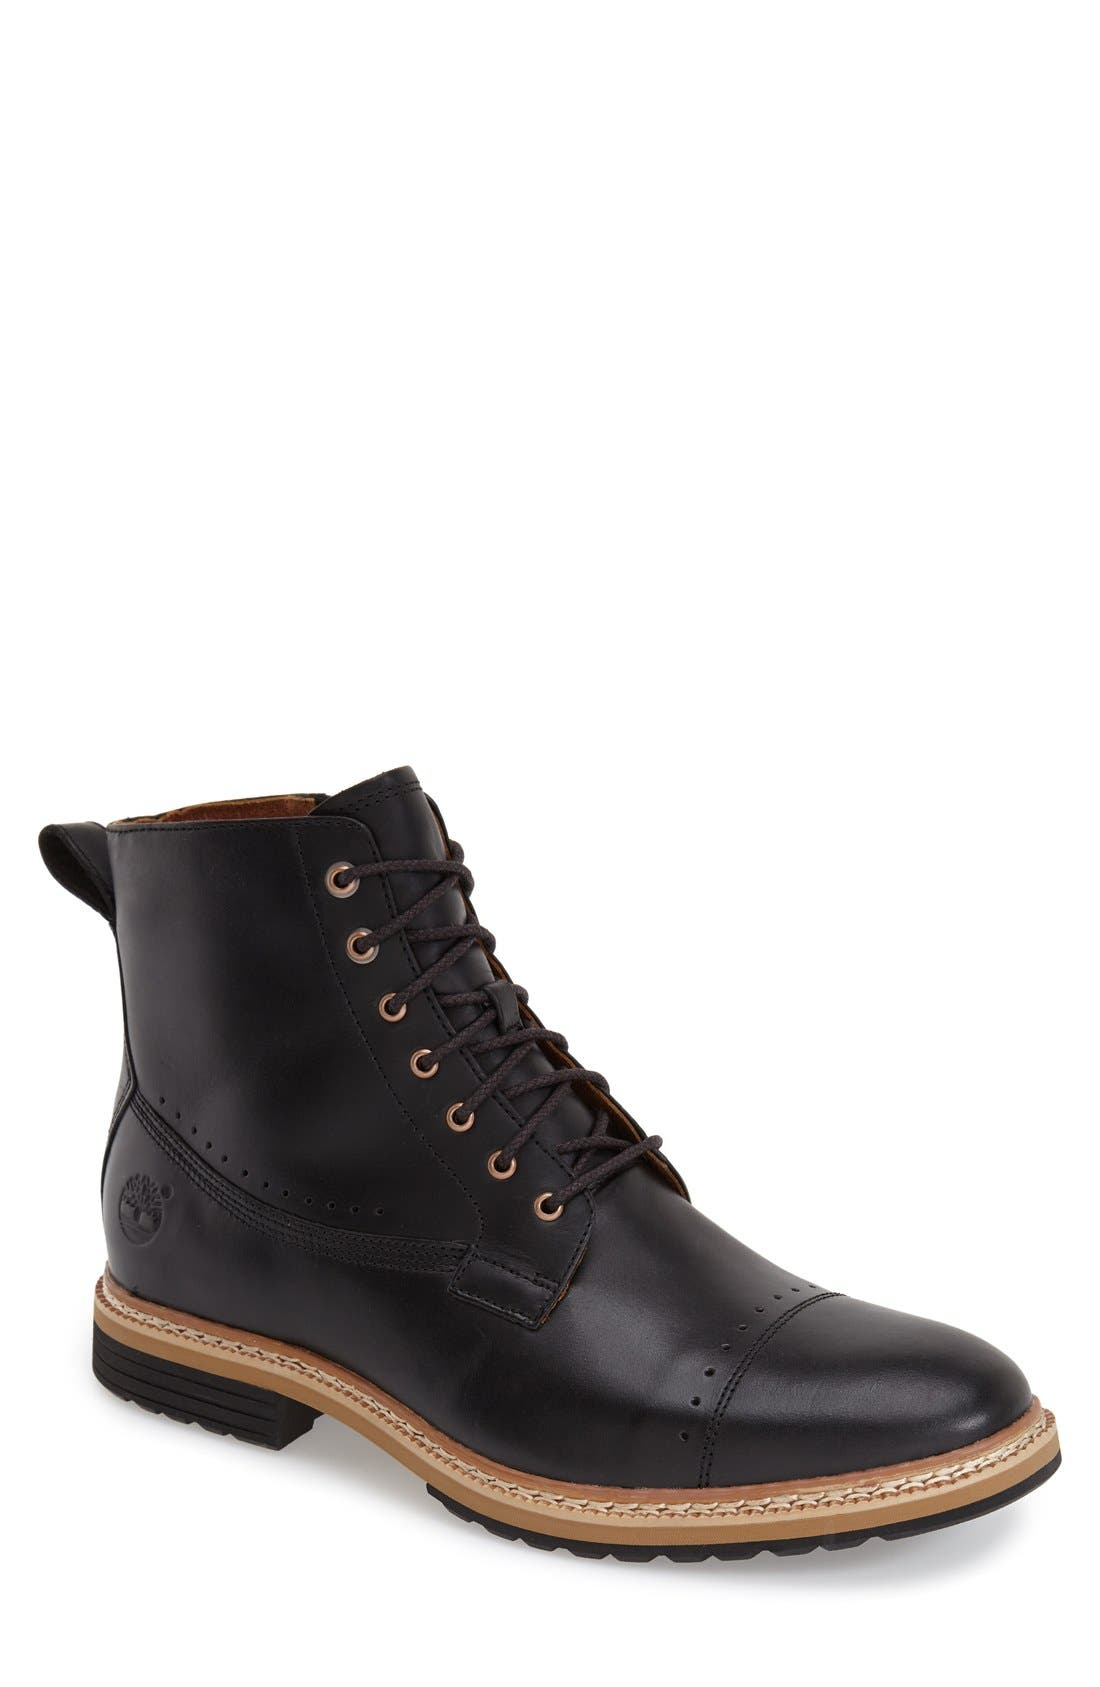 'Westhaven' Cap Toe Boot,                         Main,                         color, BLACK LEATHER